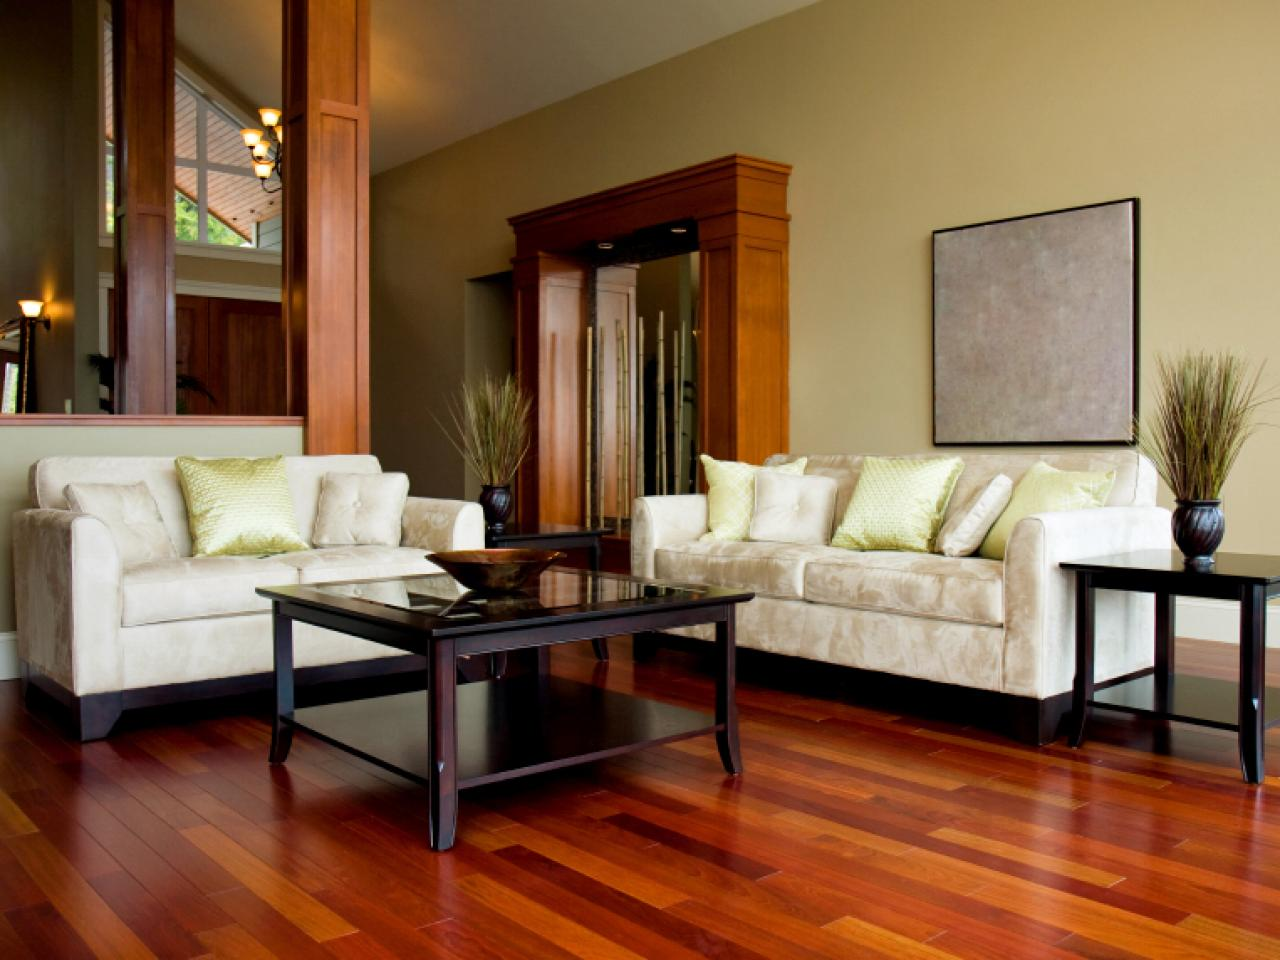 Guide to selecting flooring diy for Cheap flooring ideas for living room